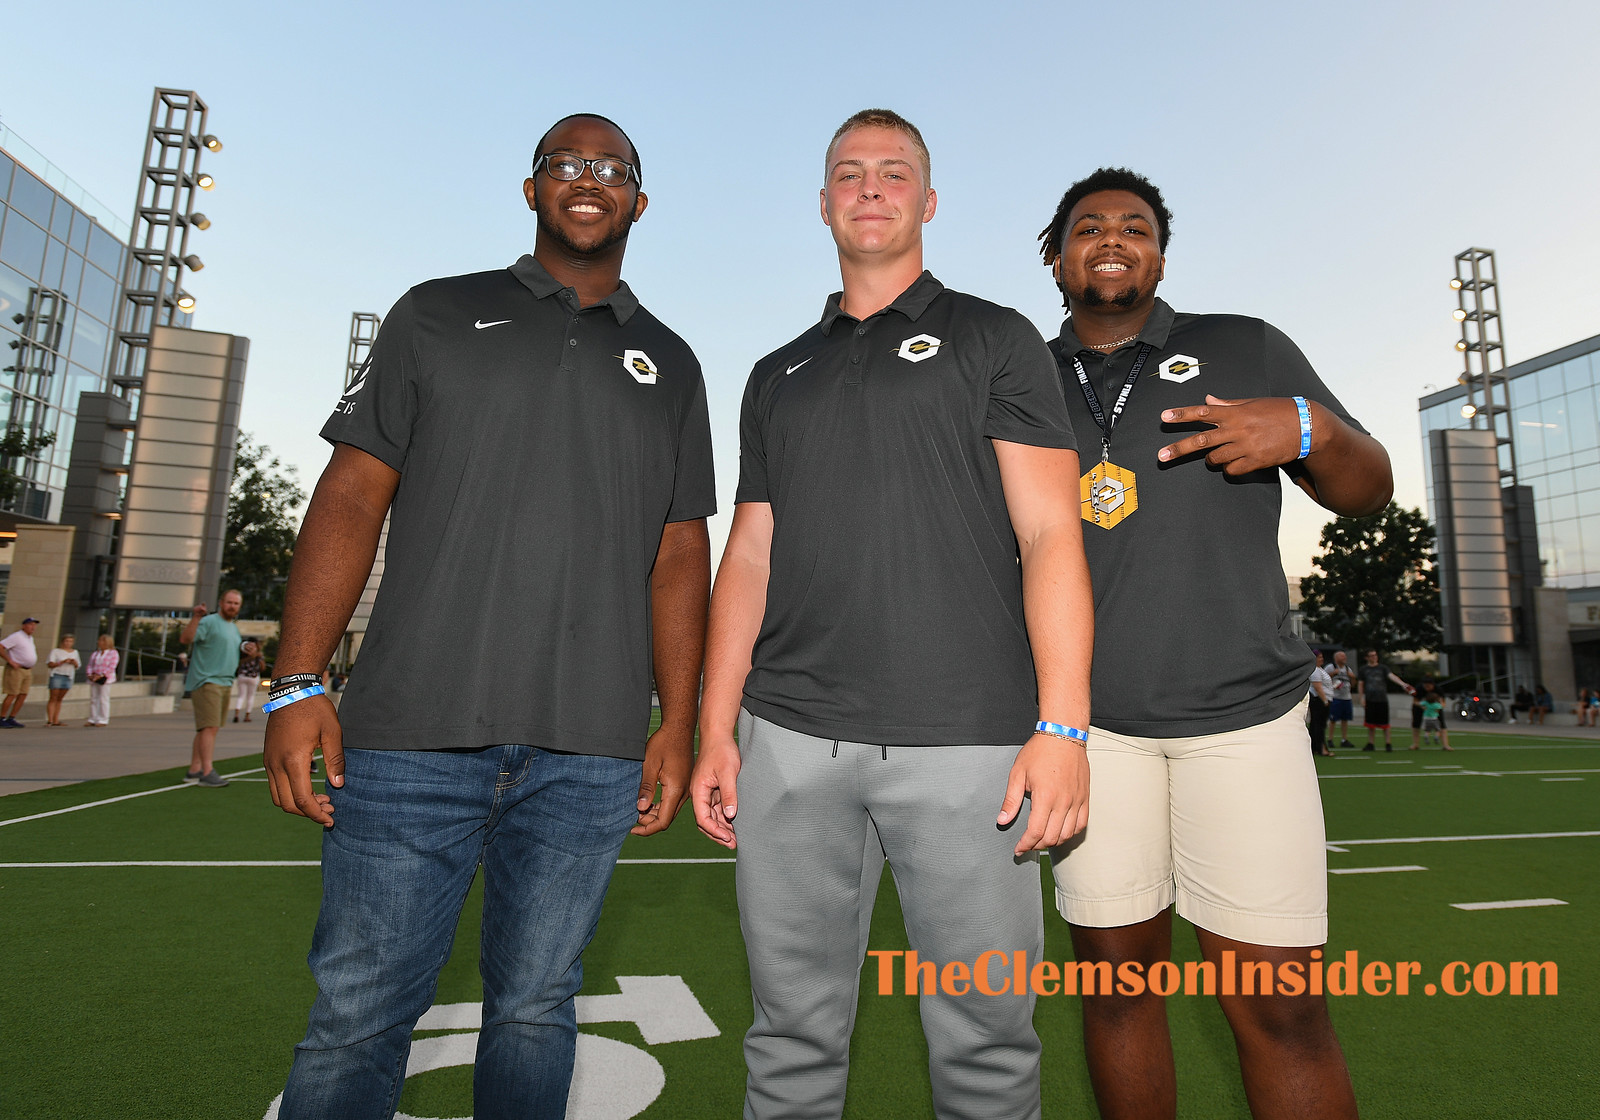 From left, Clemson offensive linemen commits Paul Tchio, Walker Parks and Mitchell Mayes Sunday, June 30, 2019 at The Opening in Frisco, TX. Bart Boatwright/The Clemson Insider